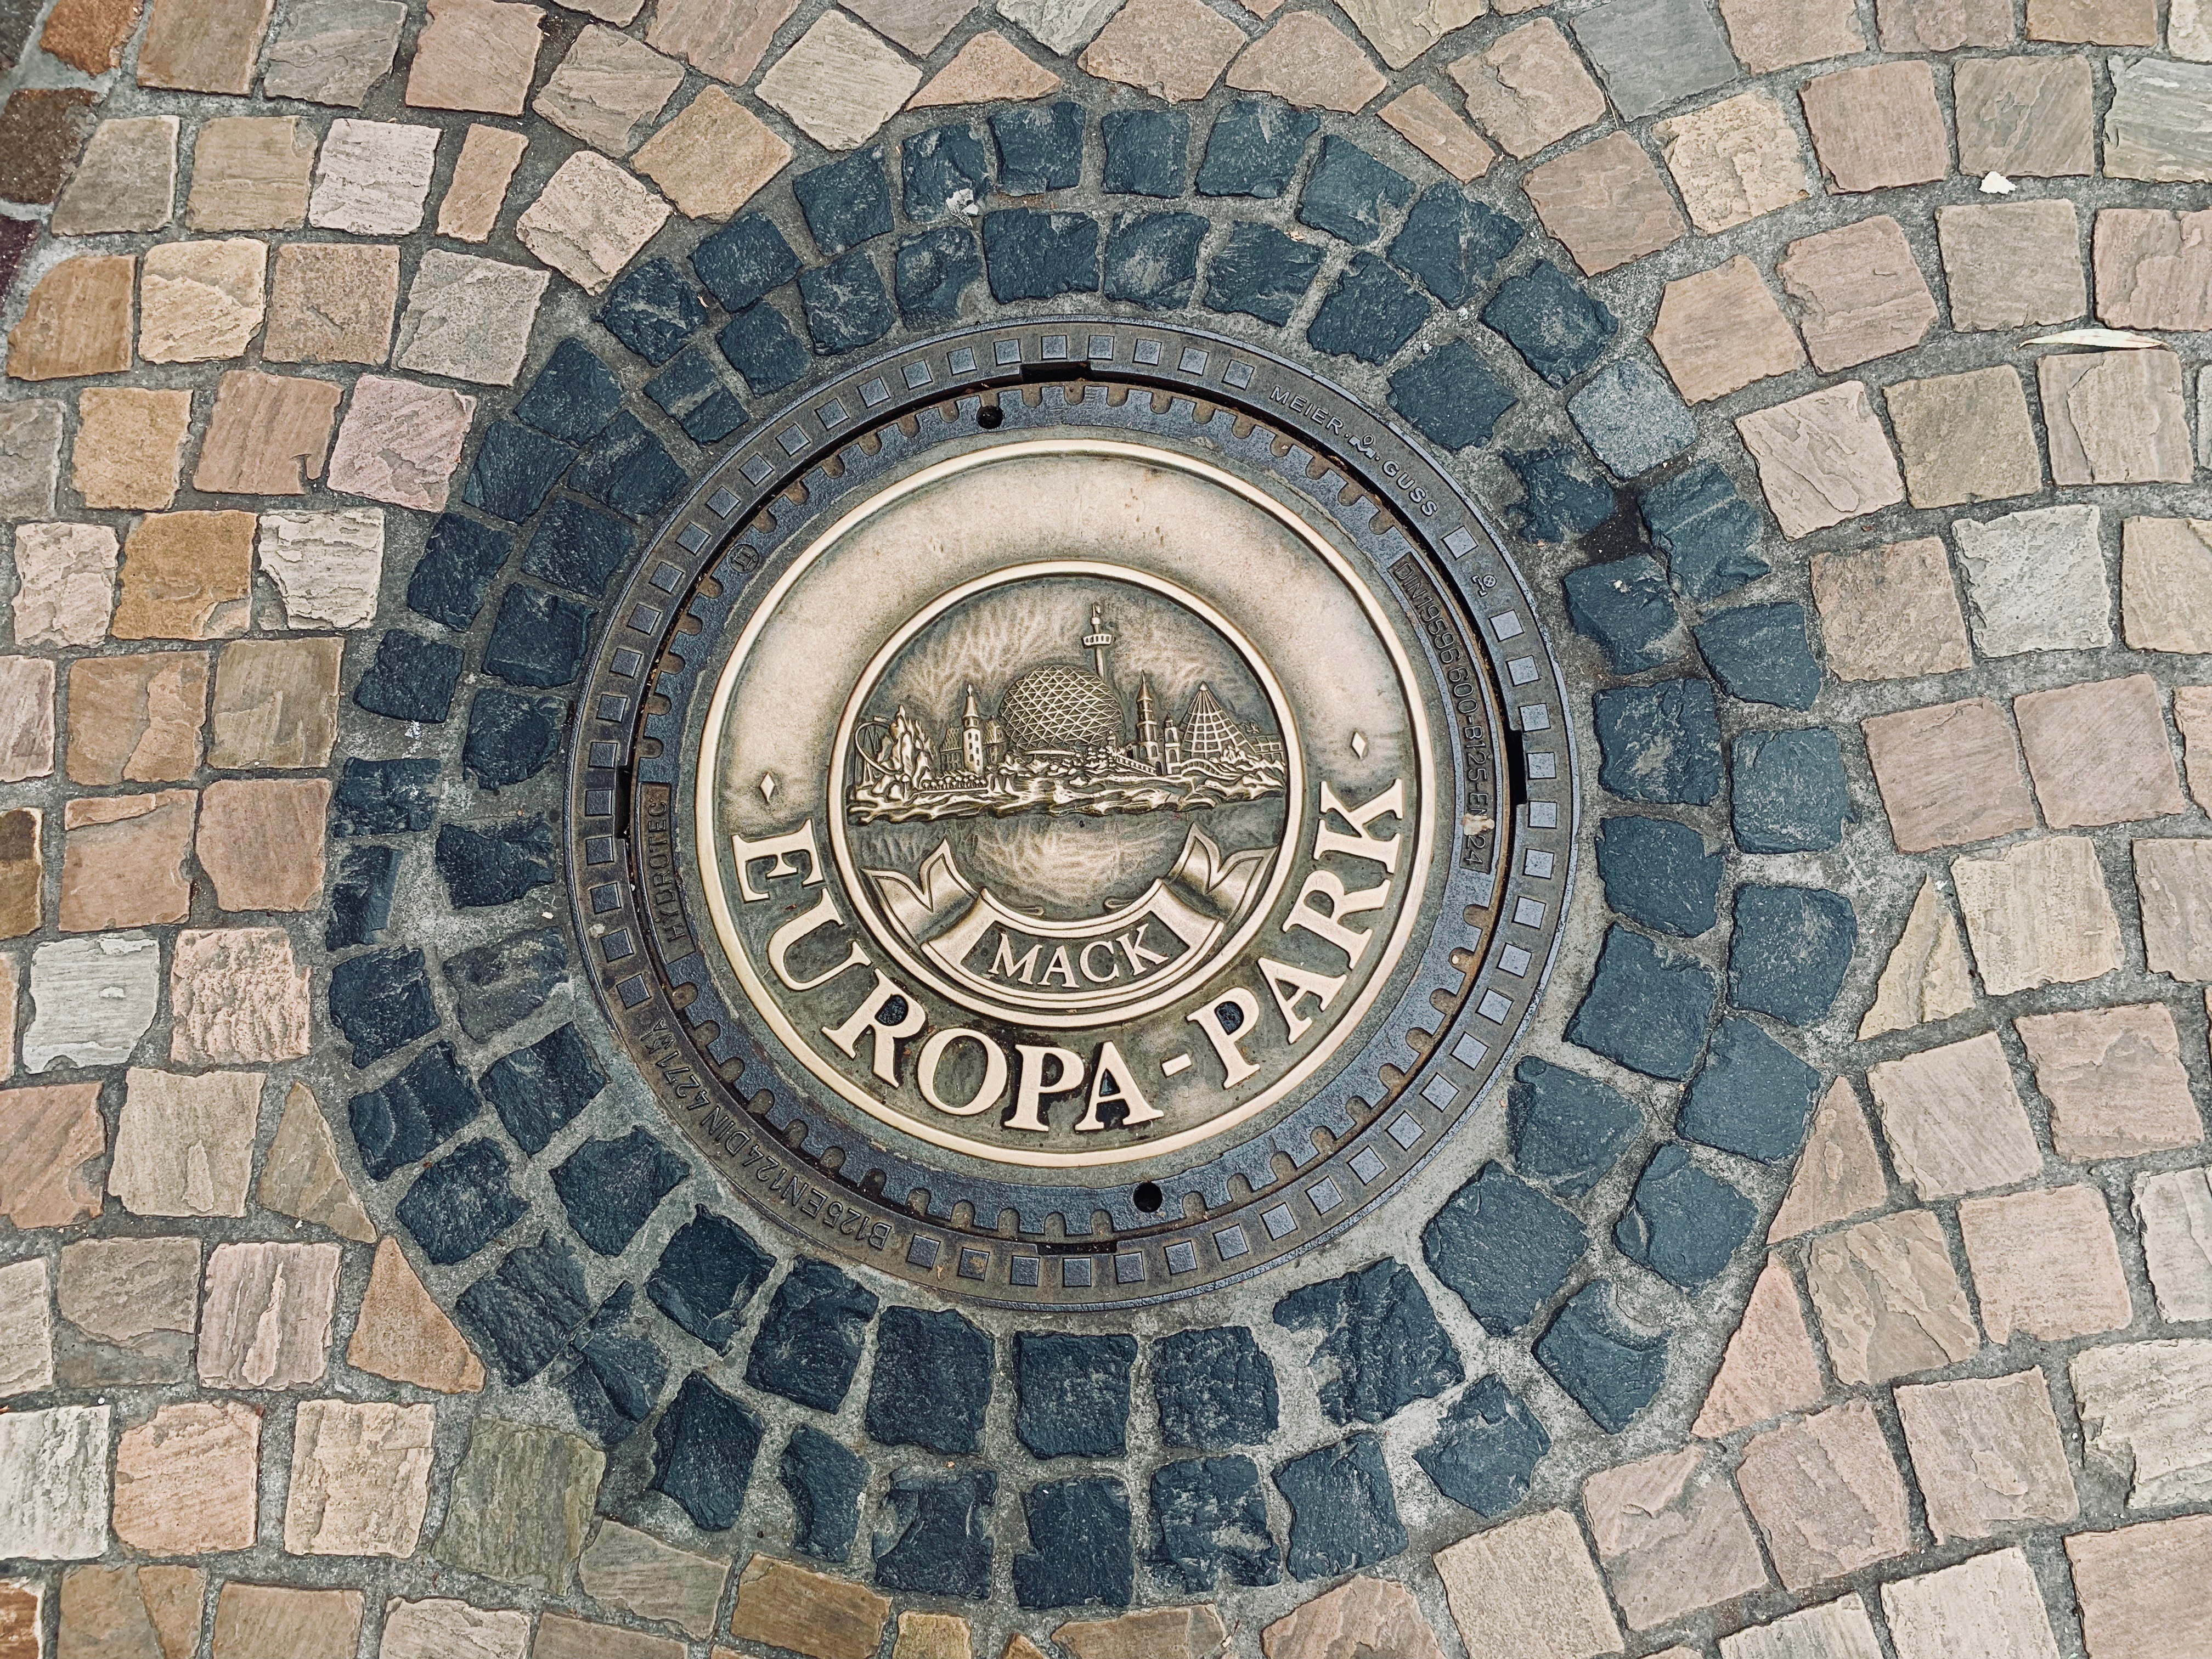 packing new year holiday europa park logo on floor